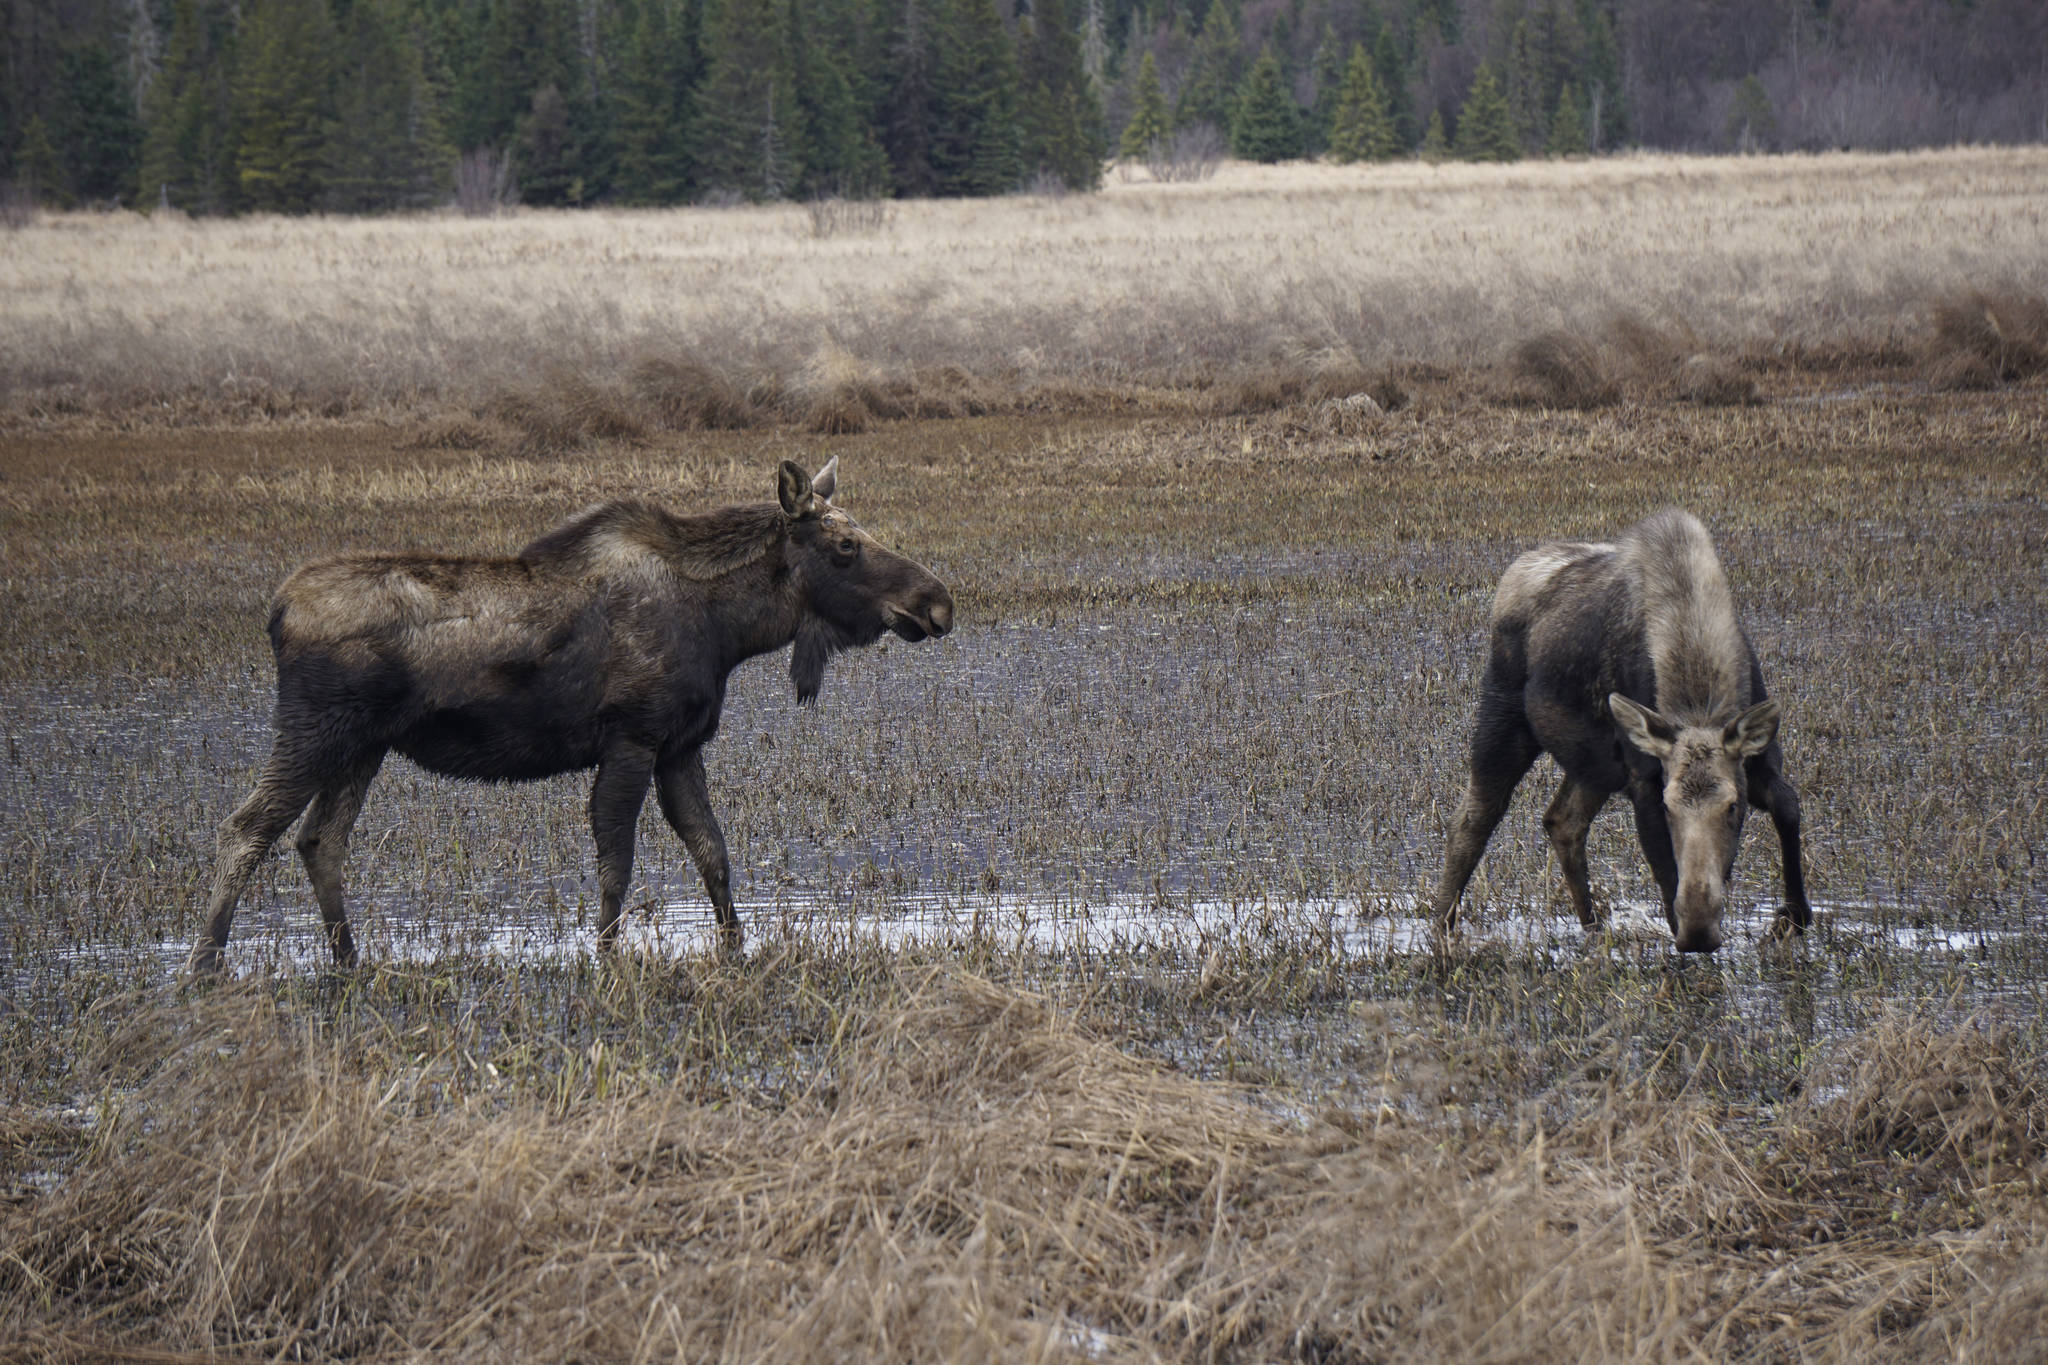 Two moose browse at the east end of Beluga Lake about 6 p.m. Thursday, April 11, 2019, as seen from the airport viewing platform at the end of FAA Road in Homer, Alaska. The moose were among a group of five feeding in the marsh. (Photo by Michael Armstrong/Homer News)